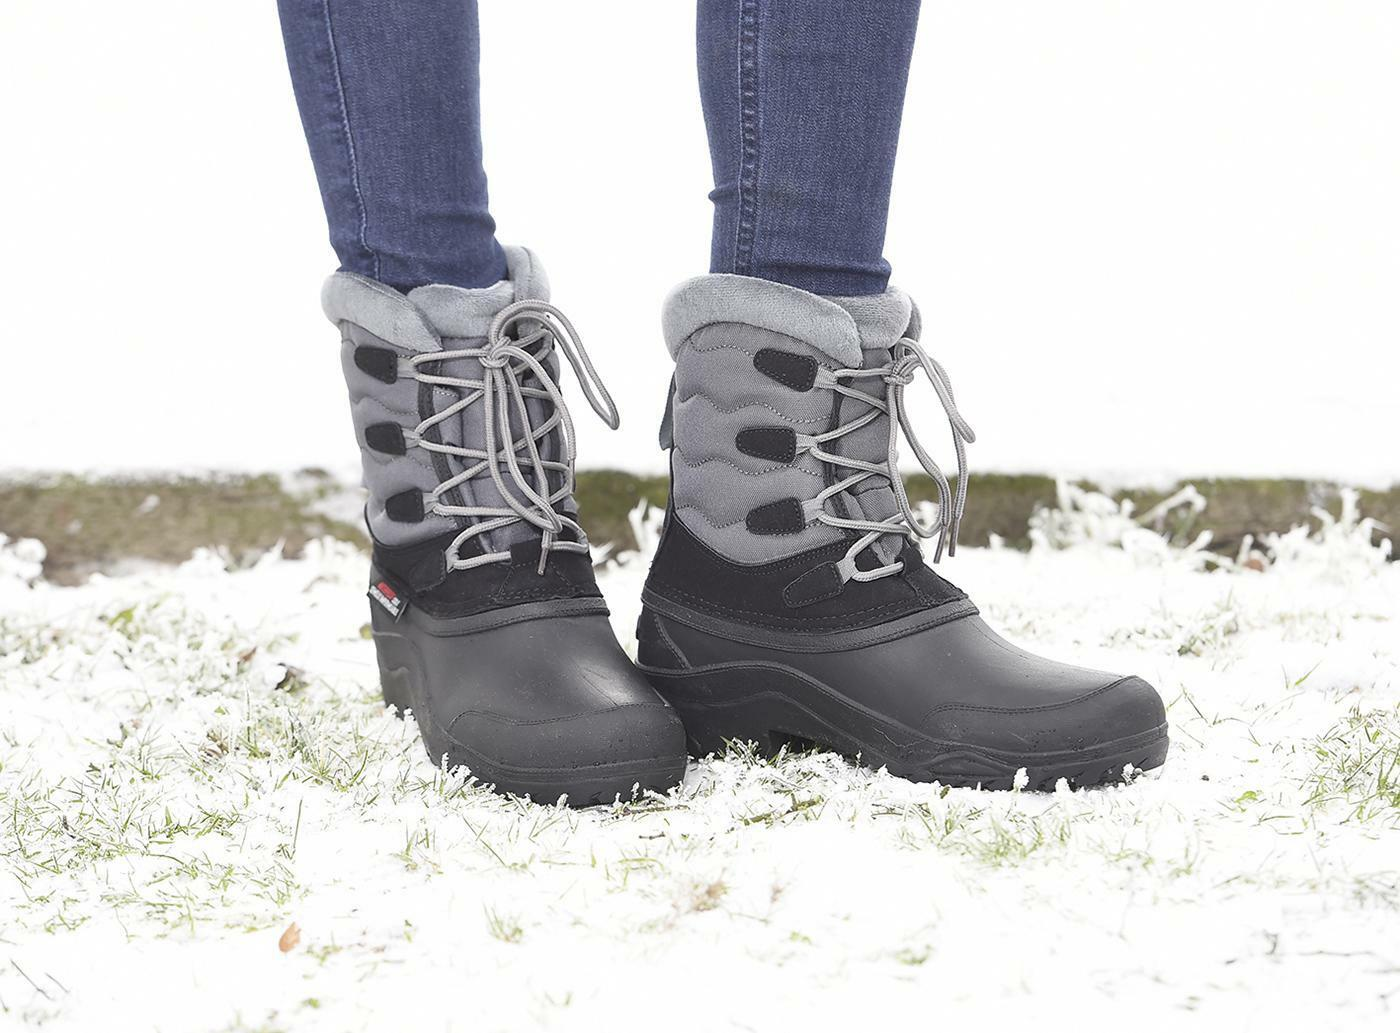 Buses Thermal Riding schuhe Delat Winter schuhe Thermo Stable Stiefel Thermo Stiefel NEW